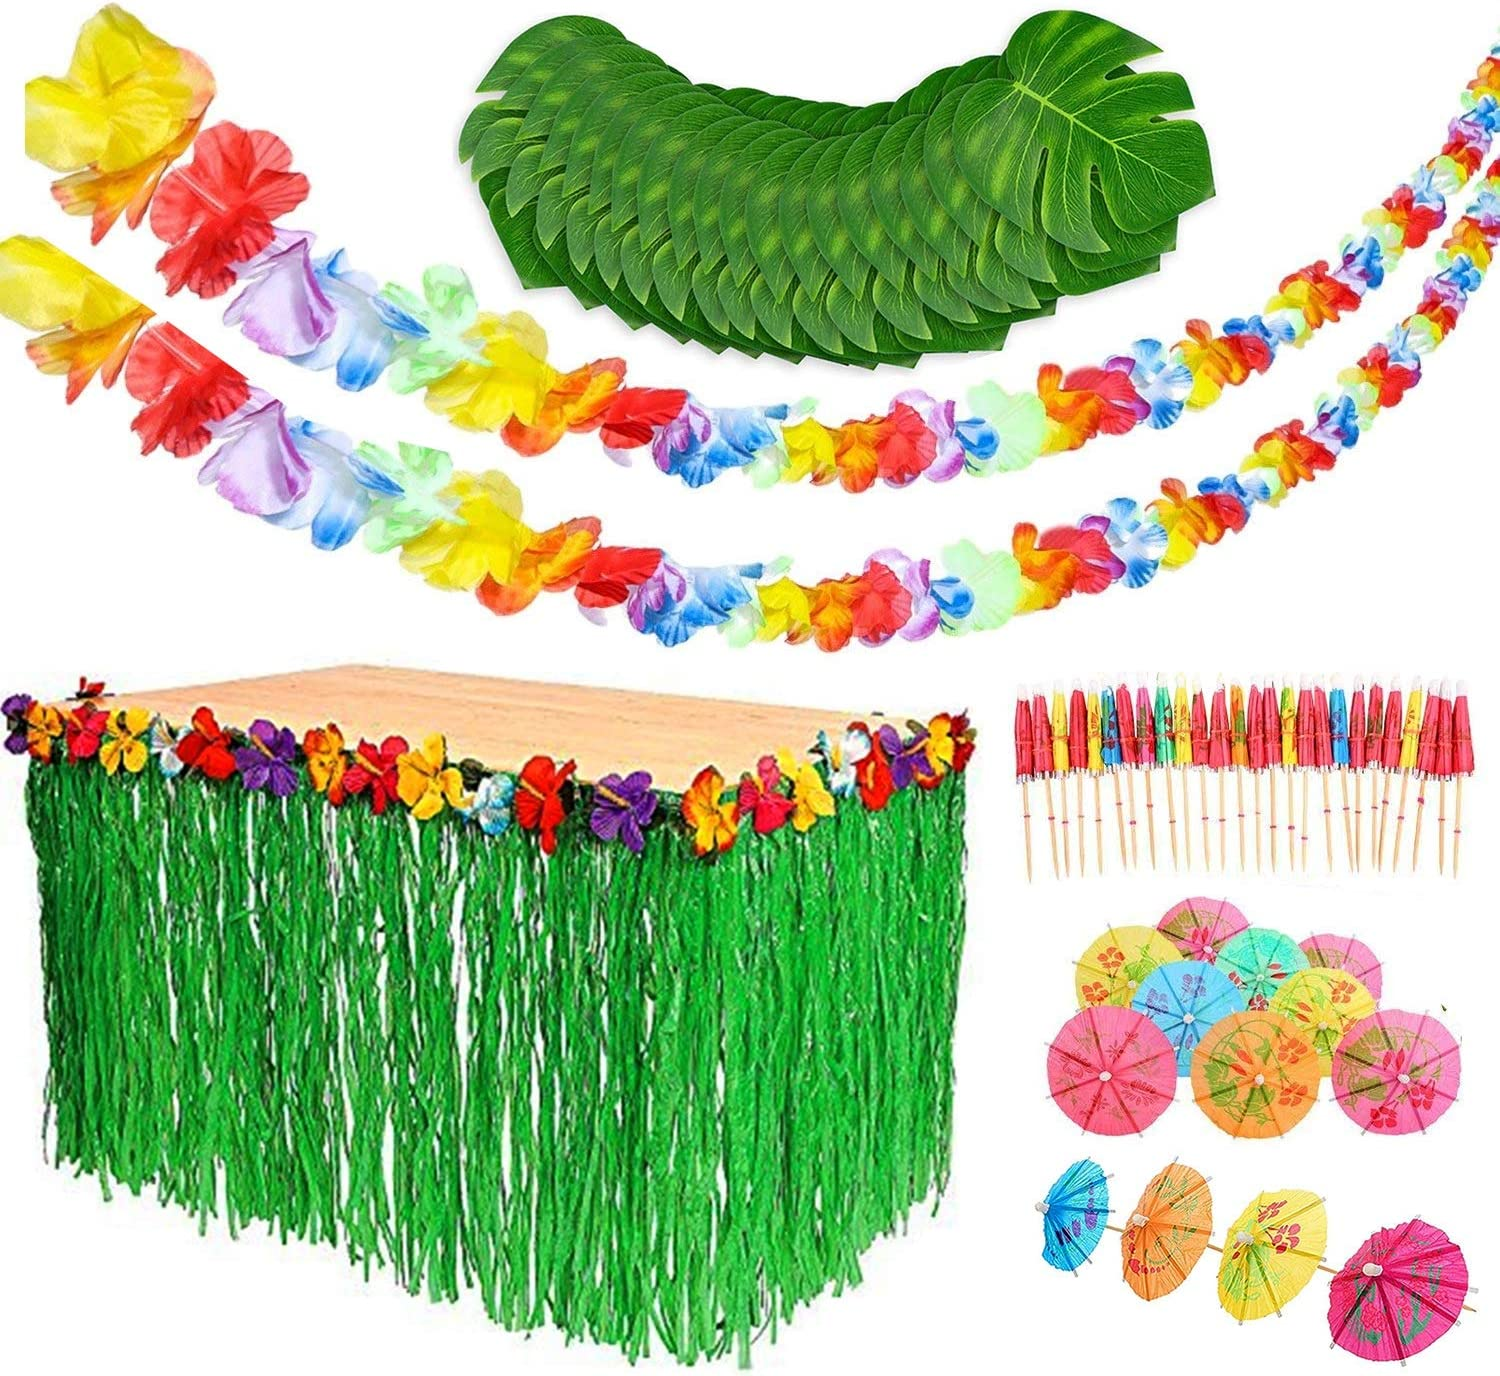 Luau Party Decorations Set - Luau Party Supplies - Hawaiian Beach Party - Grass Table Skirt - Hawaiian Garland - Drink Umbrellas - Palm Leaves - By Tigerdoe